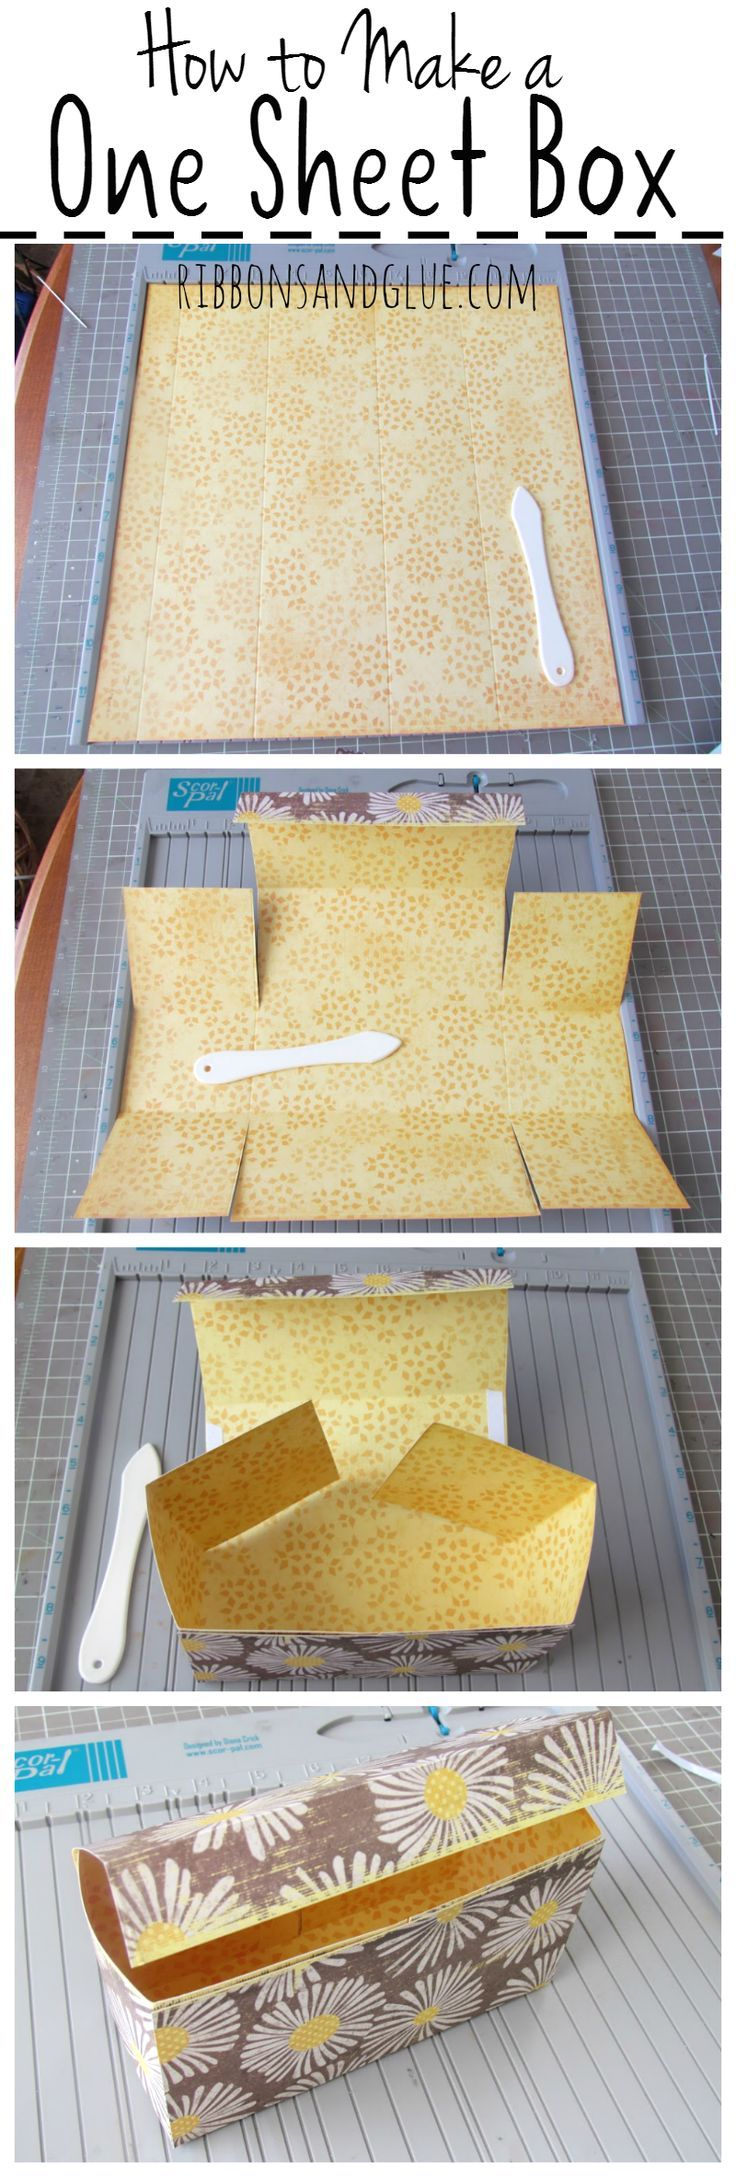 Follow this Easy Box Tutorial made out of one sheet of 12 x 12 paper. This perfect size treat box can easily hold a small gifts or homemade treats. Printable step by step instructions included too.